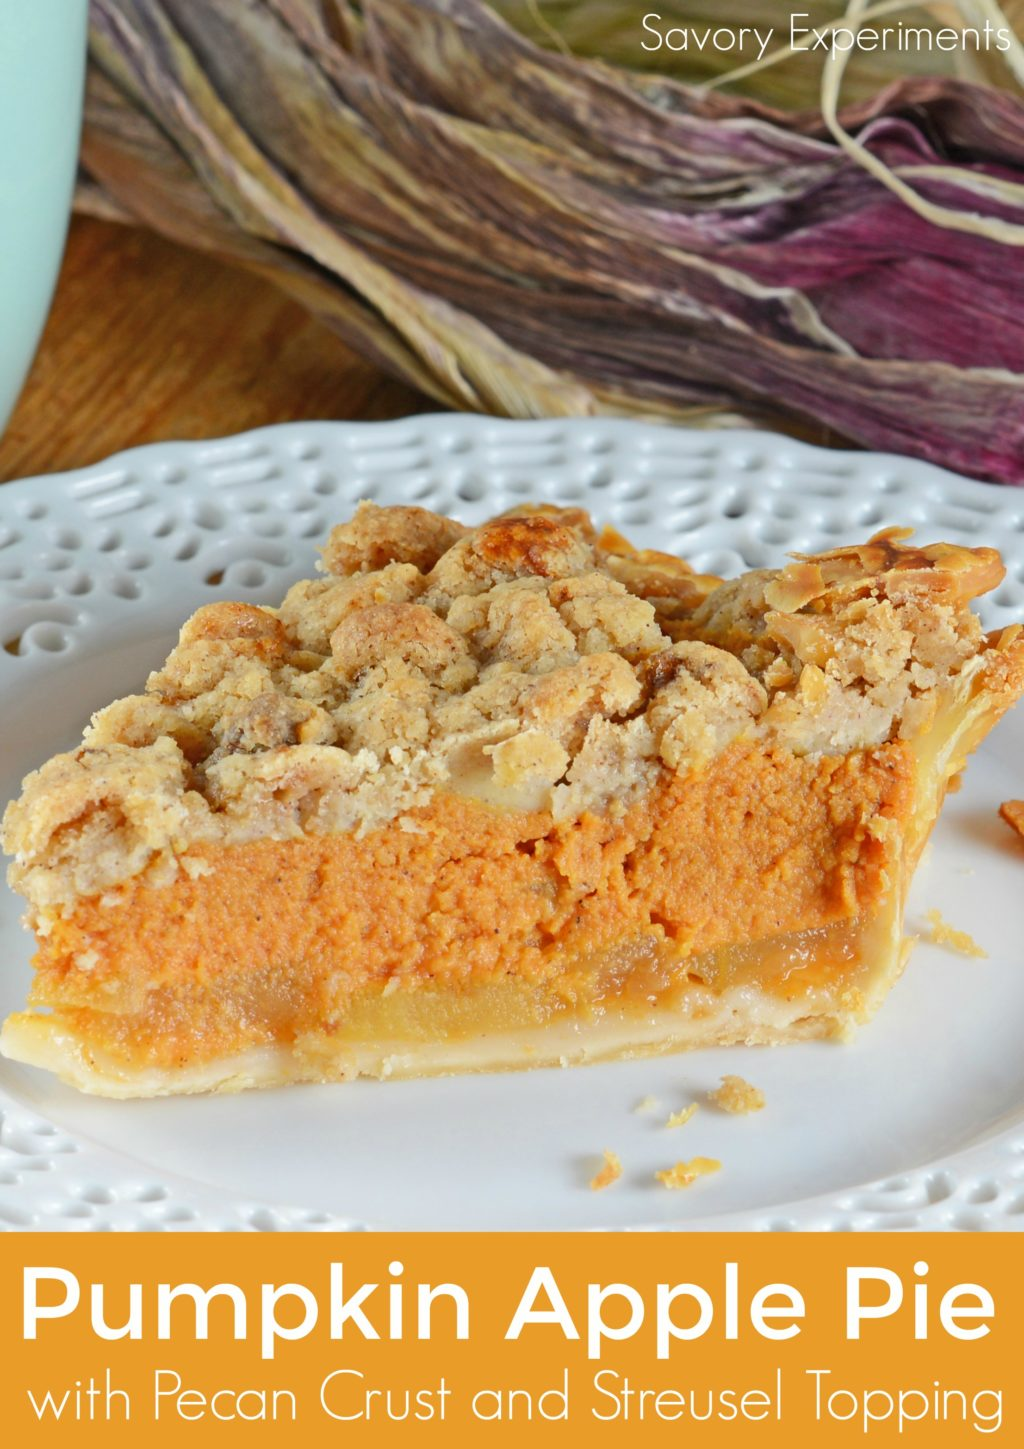 Pumpkin Apple Pie - 15+ of the Best Thanksgiving Desserts!